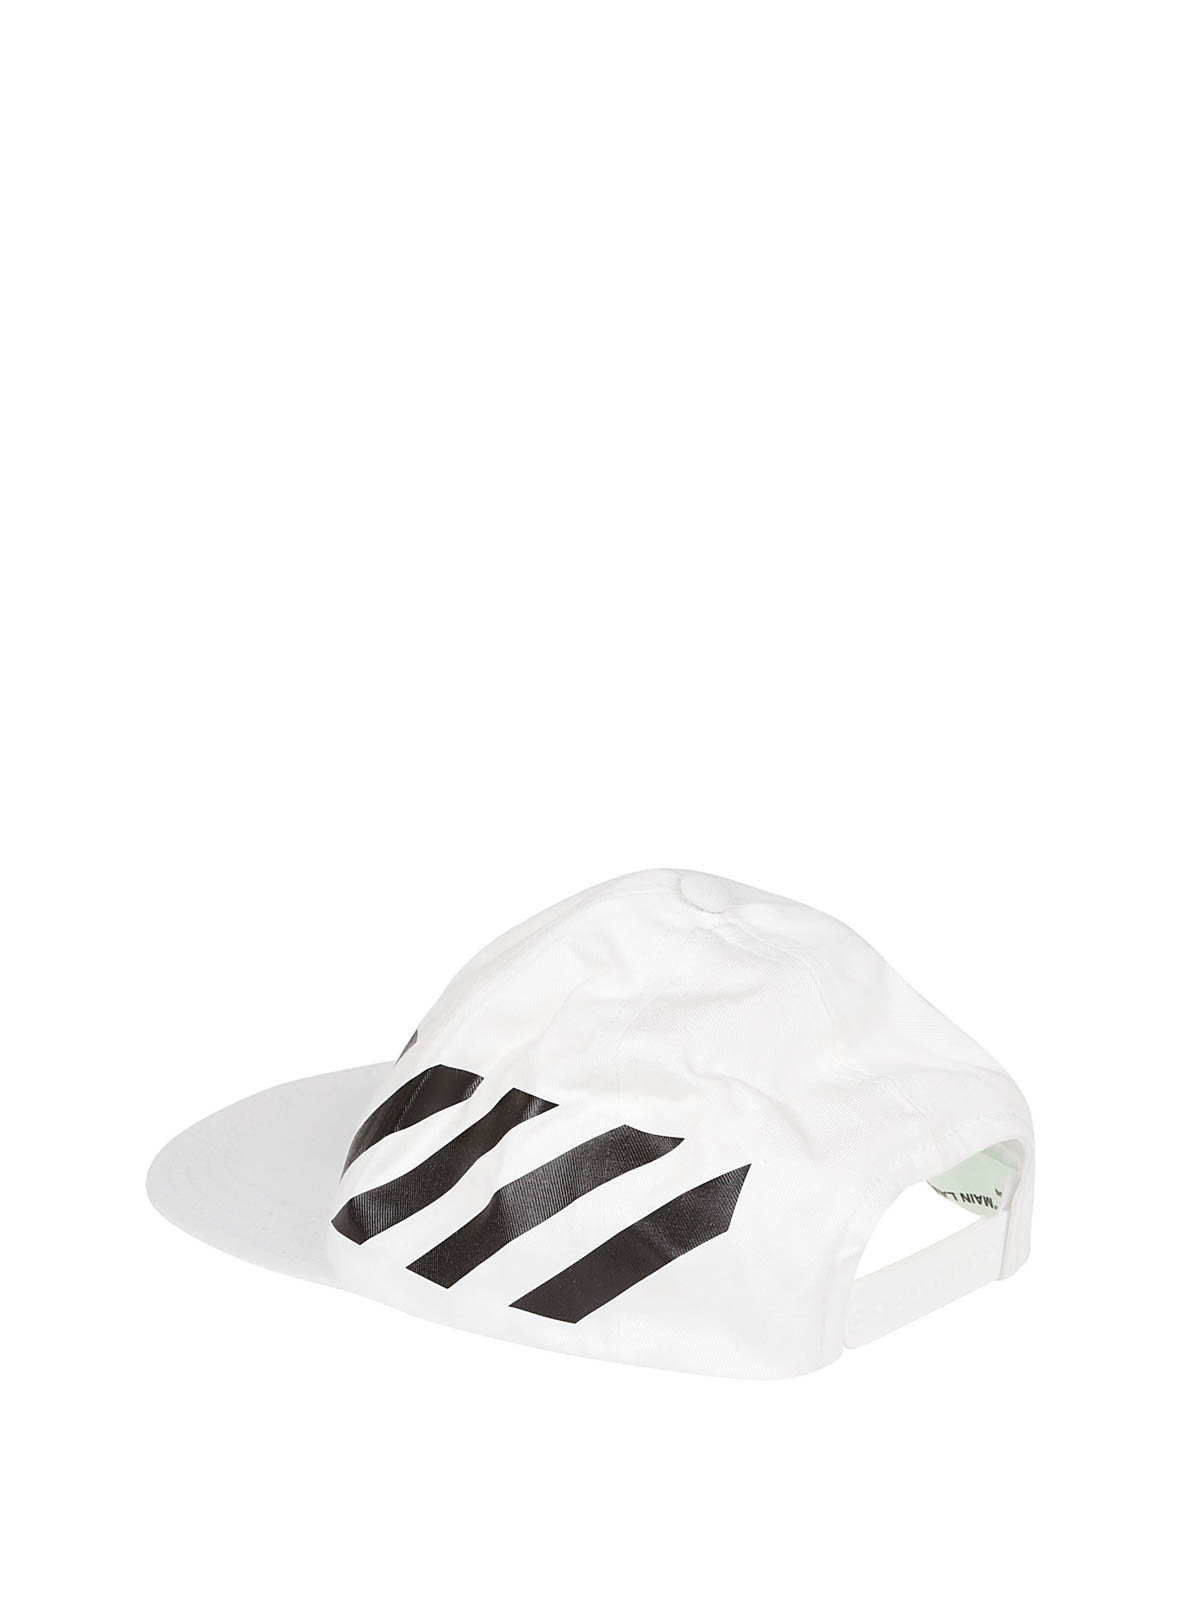 362e6234469 Off-White - Diag white baseball cap - hats   caps - OMLB008R194000320210